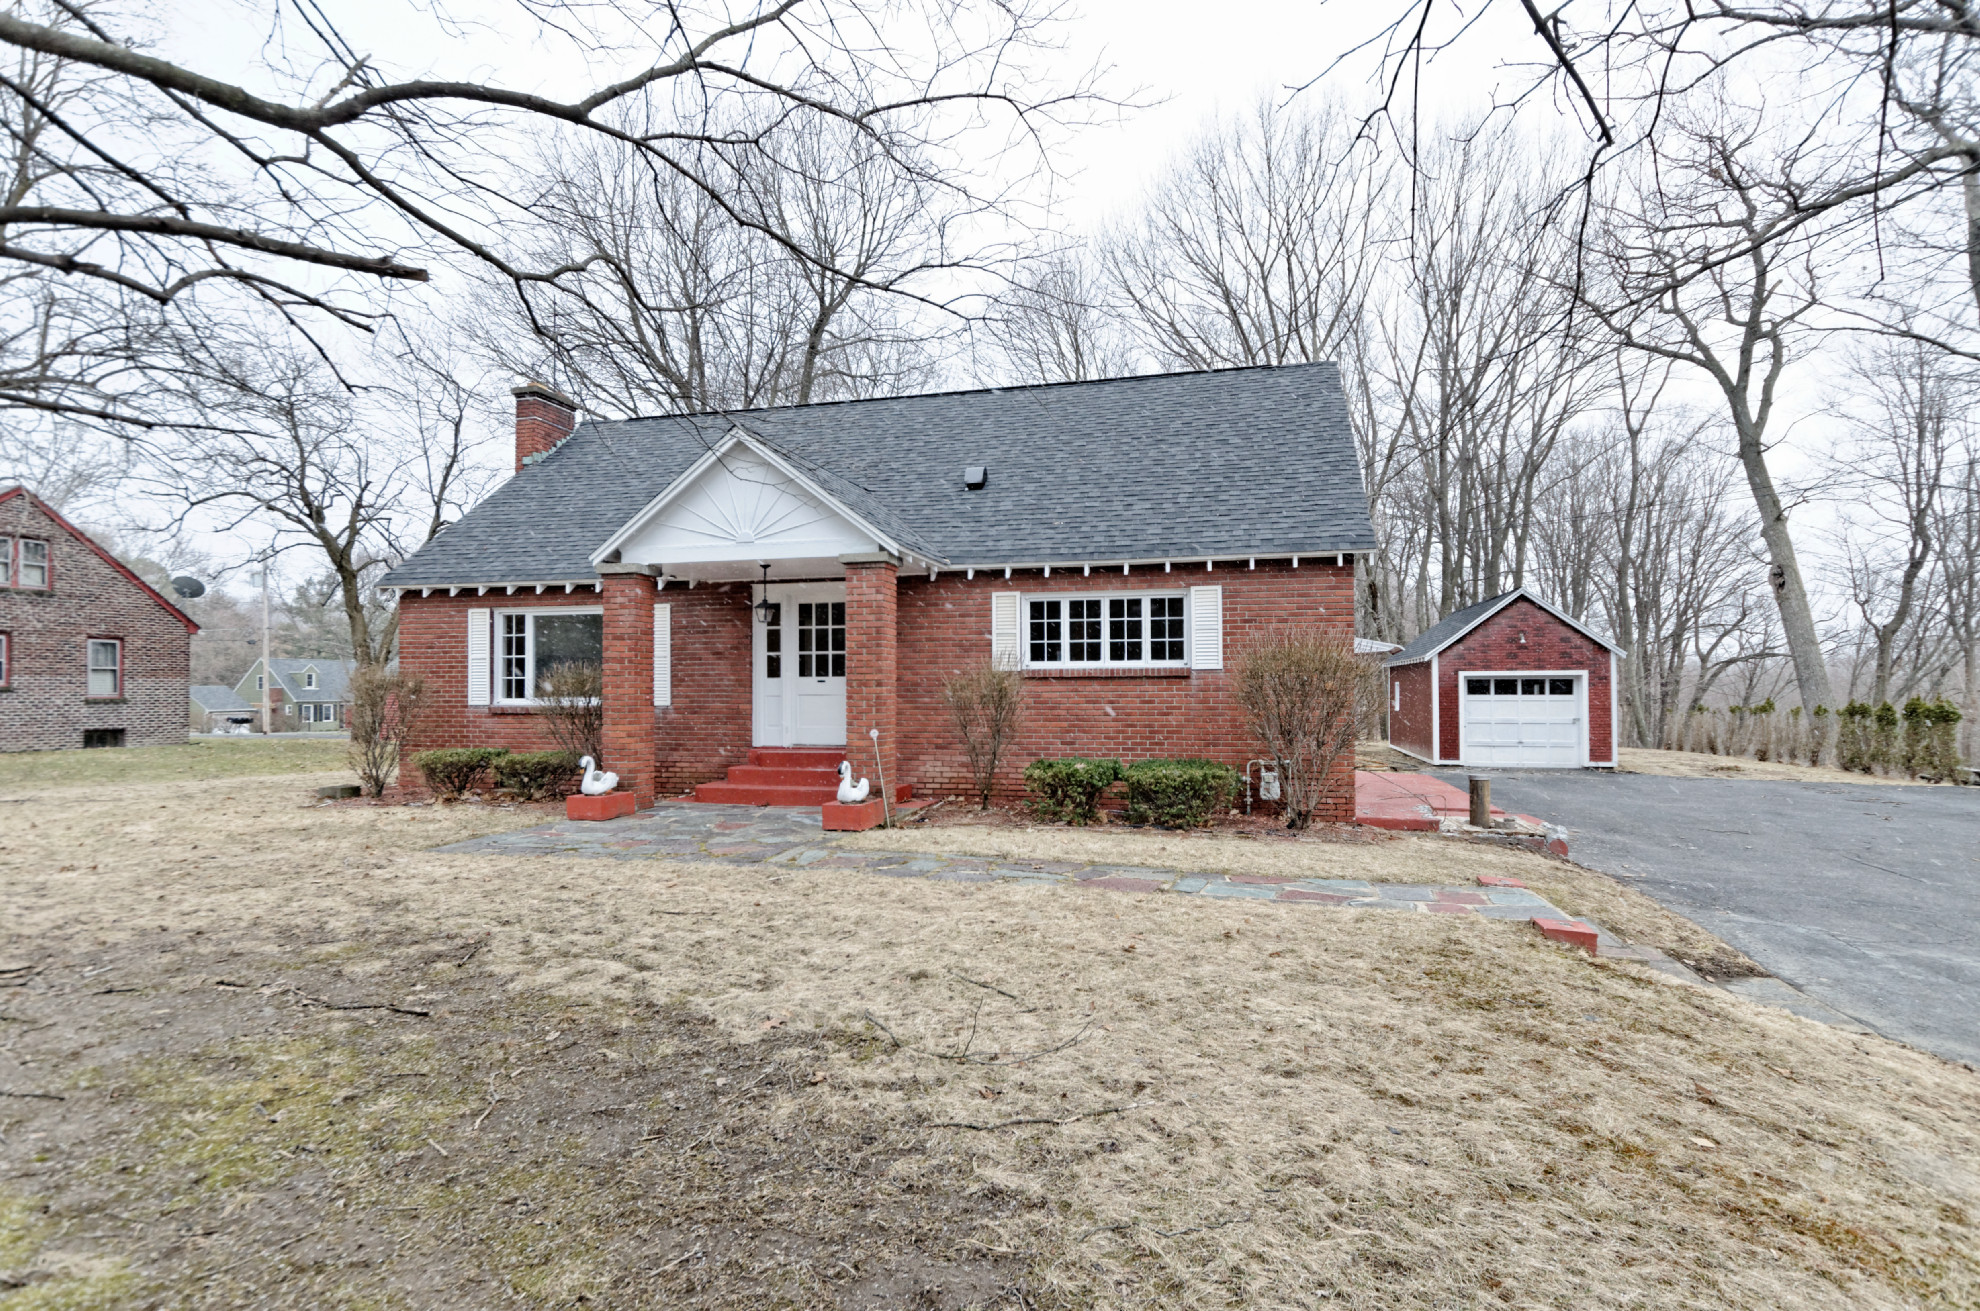 House of the week brick ranch in north greenbush times for Small brick ranch homes